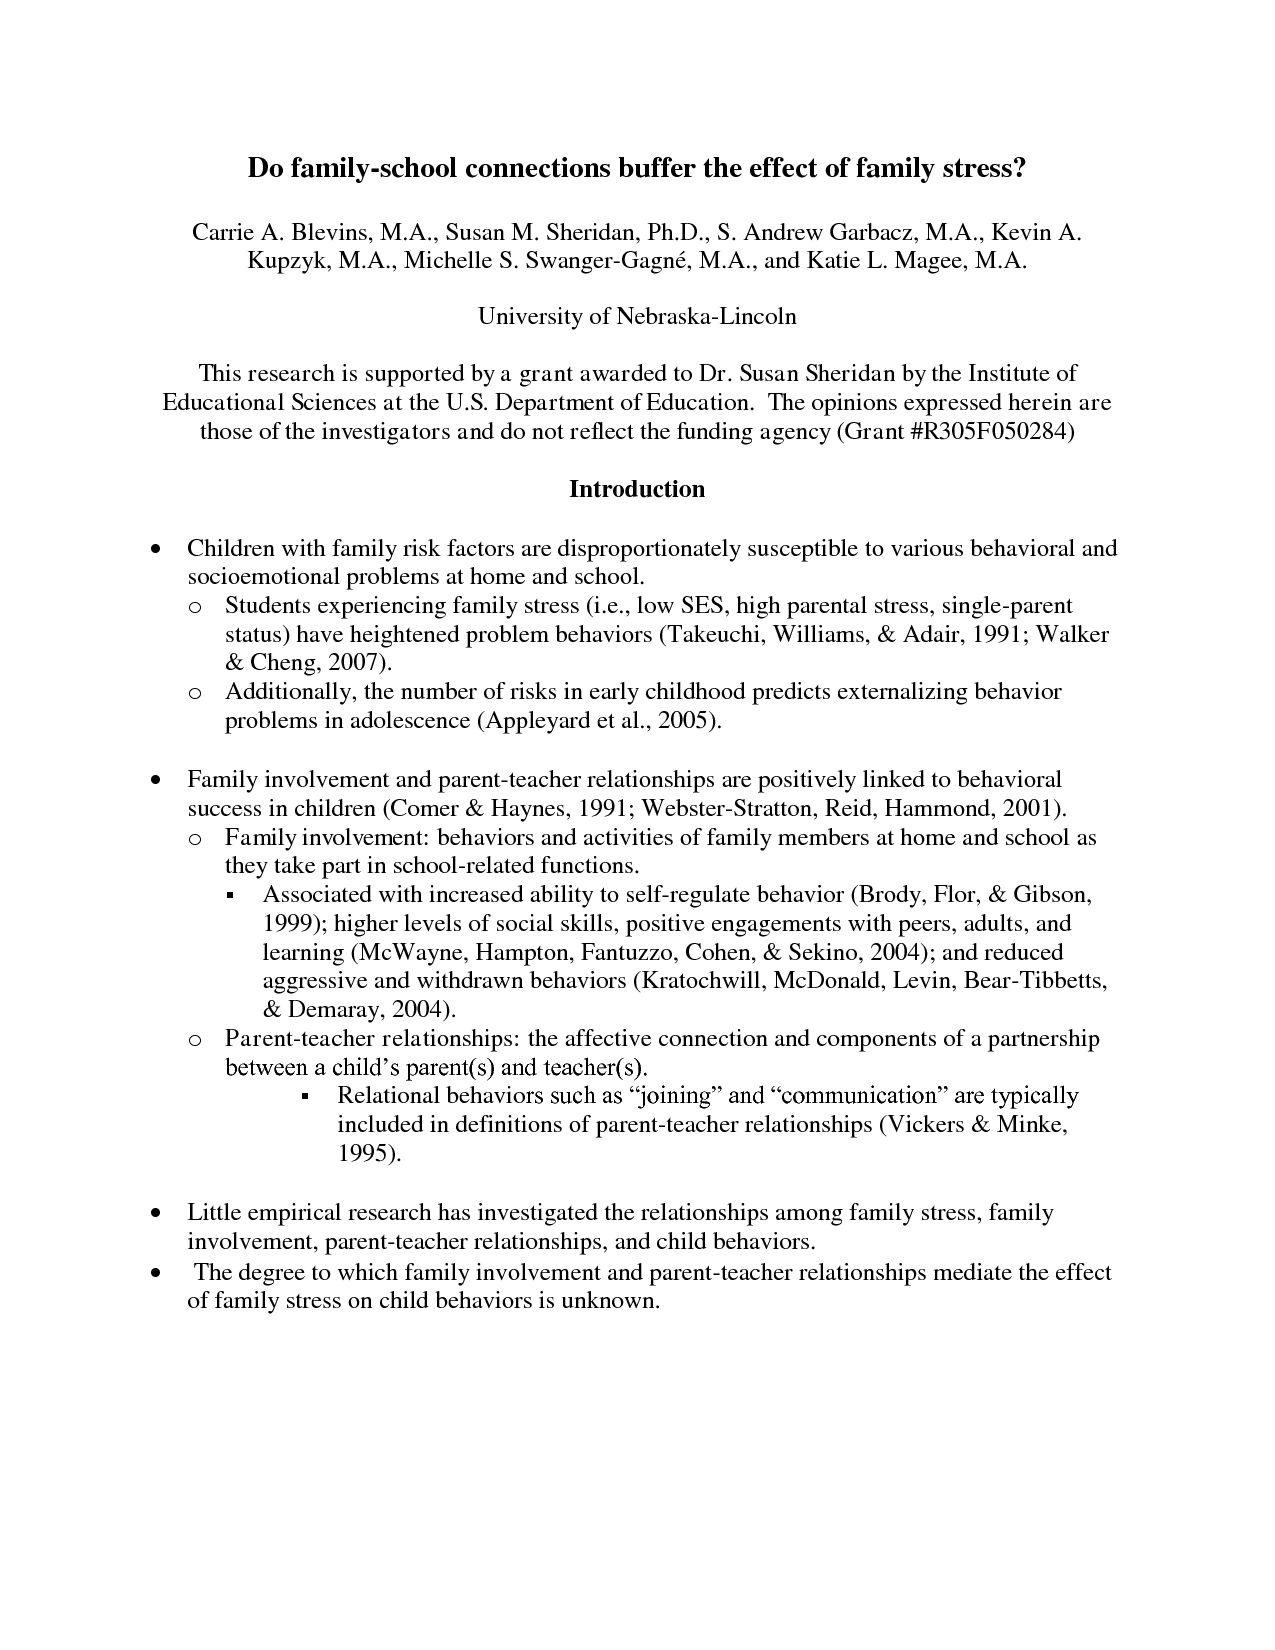 017 Liberty University Research Paper Frightening Outline Full